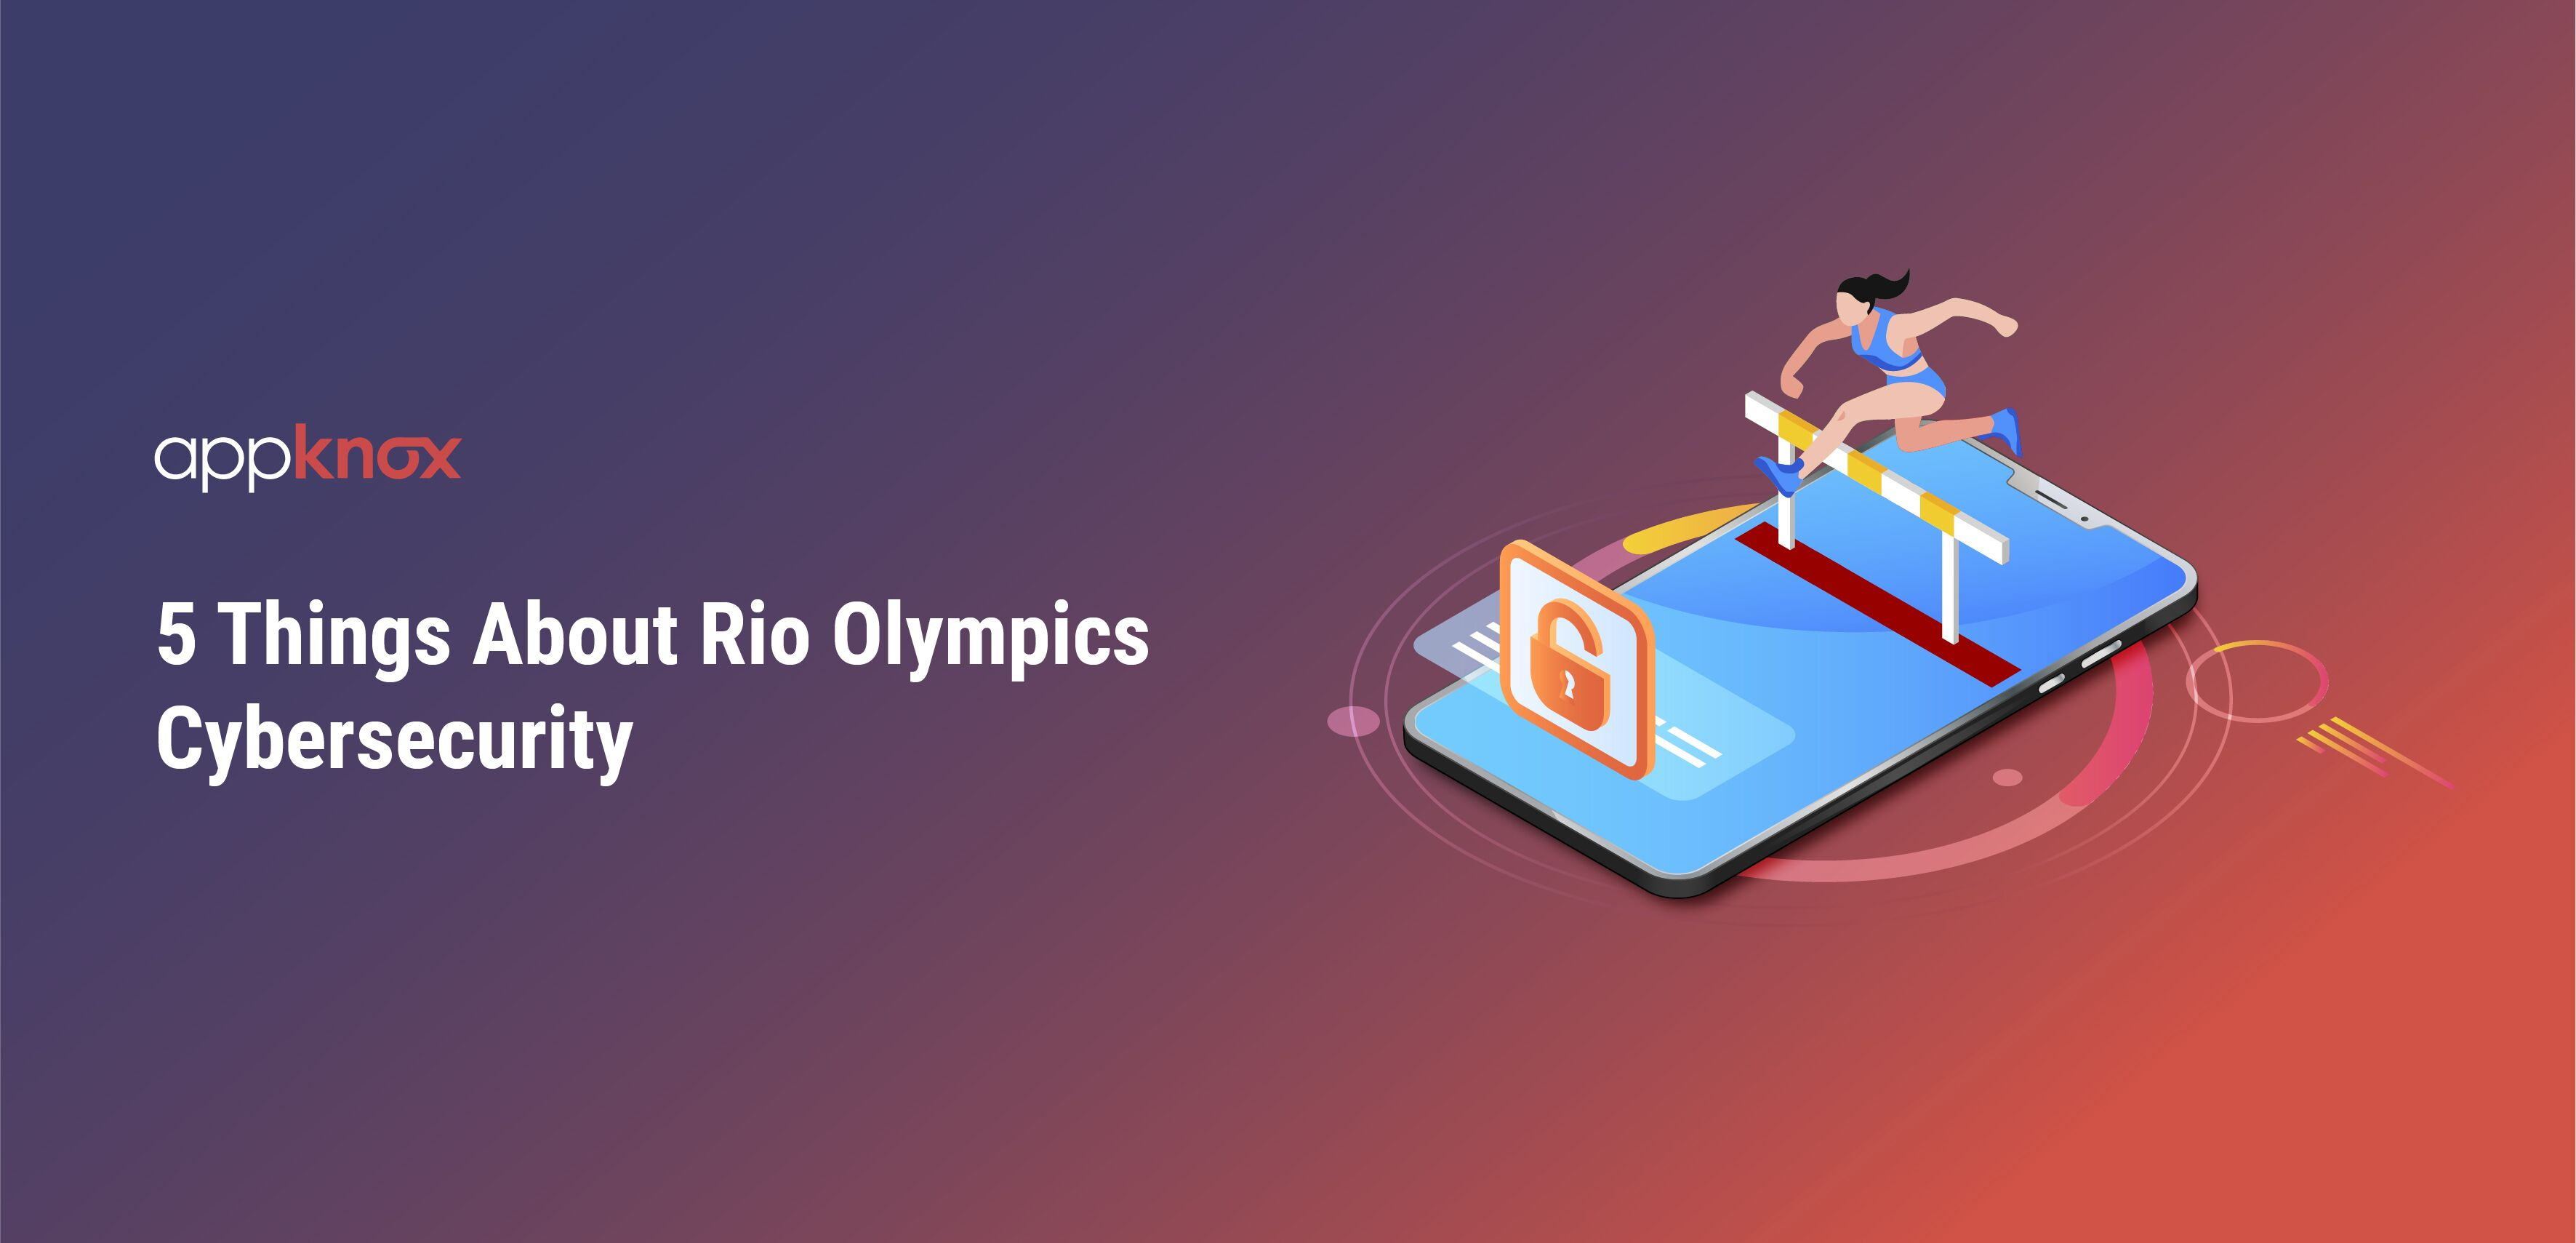 5 Things About Rio Olympics Cybersecurity